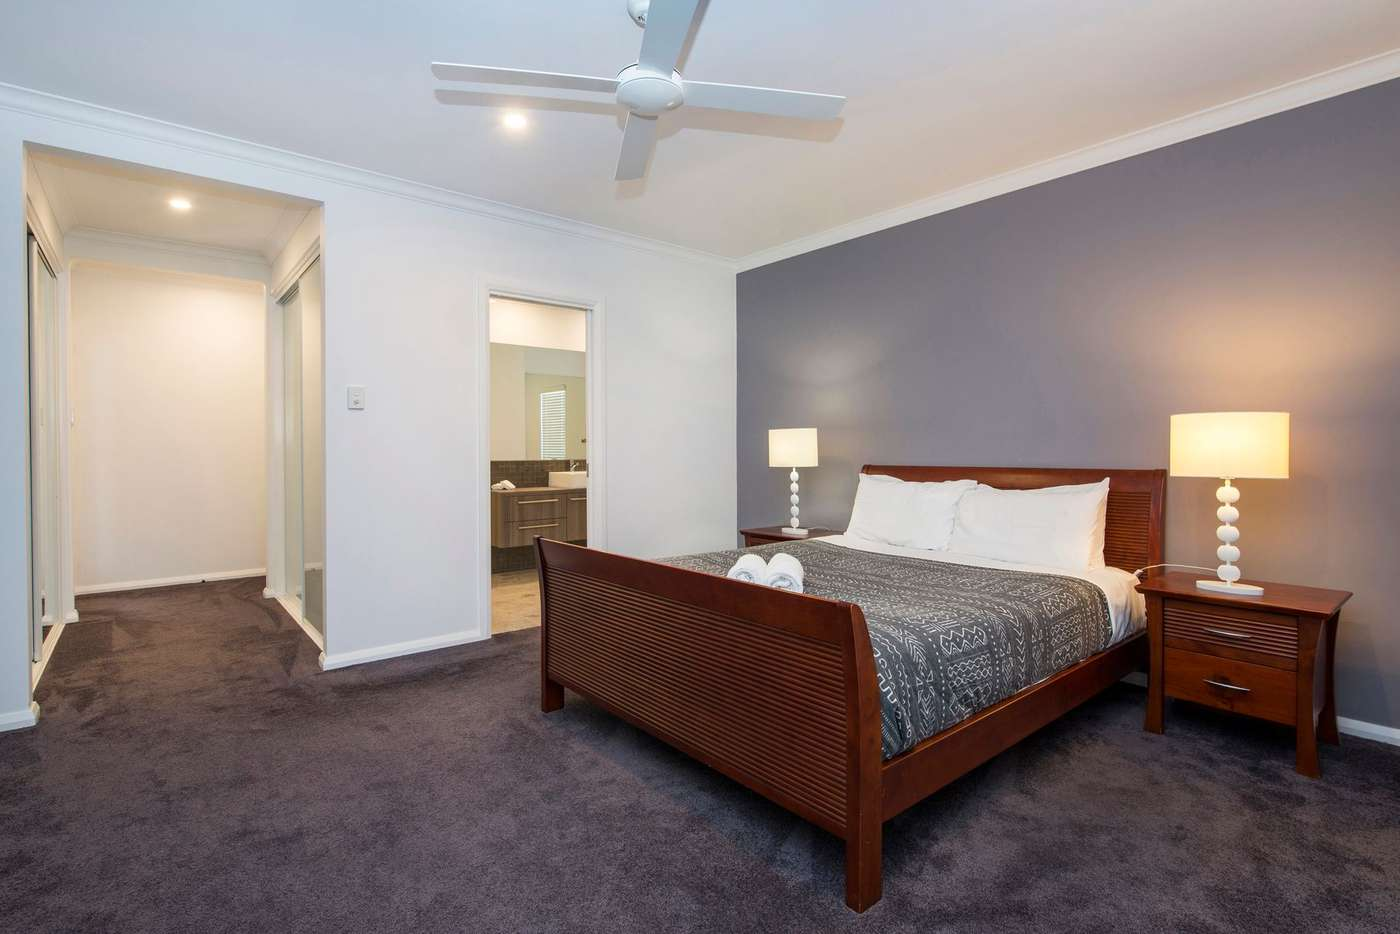 Seventh view of Homely house listing, 42 Butterworth Springs Avenue, Dunsborough WA 6281